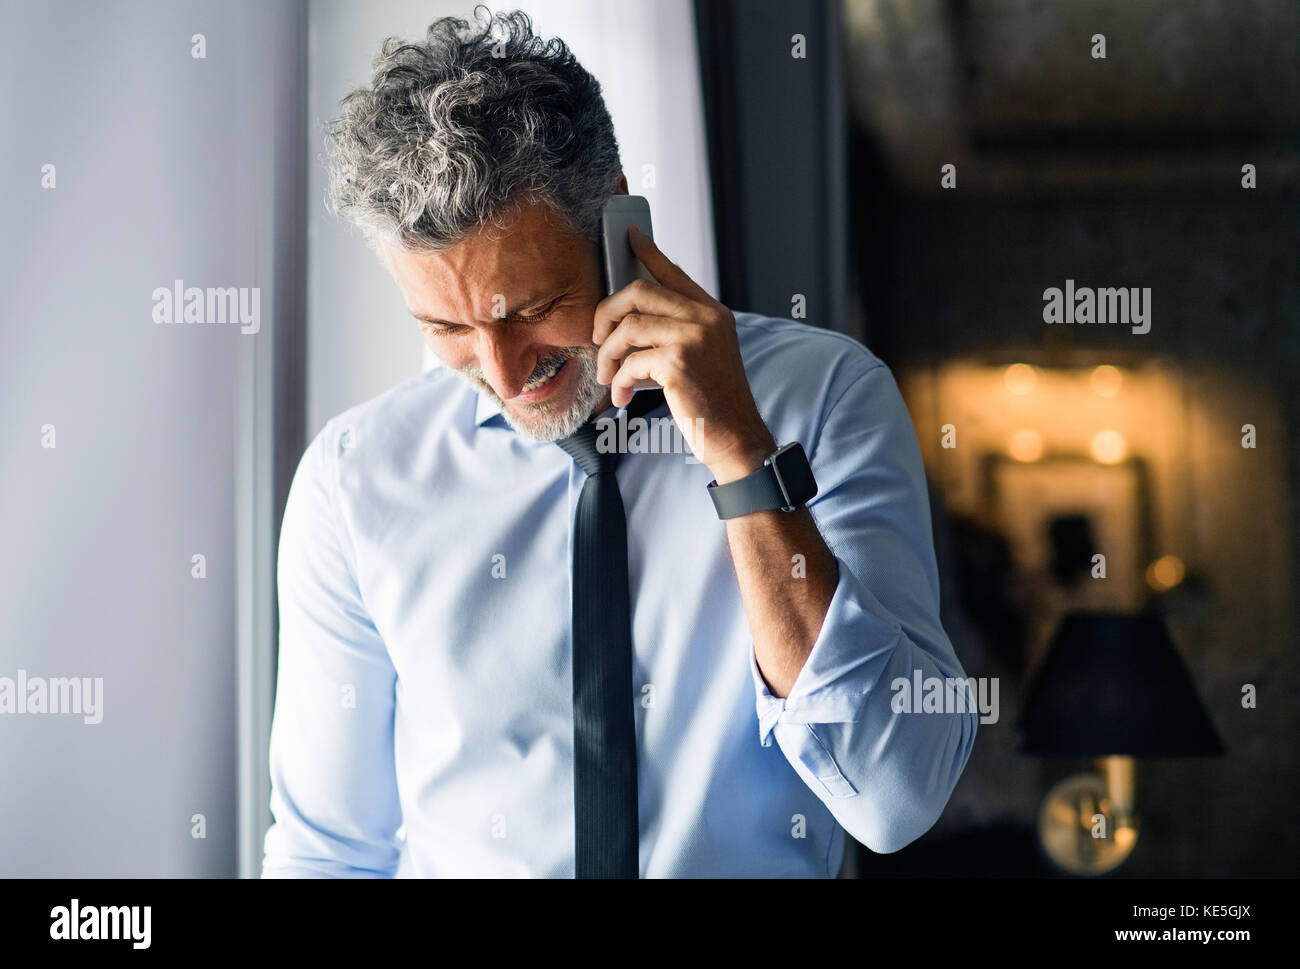 Mature businessman with smartphone in a hotel room. - Stock Image